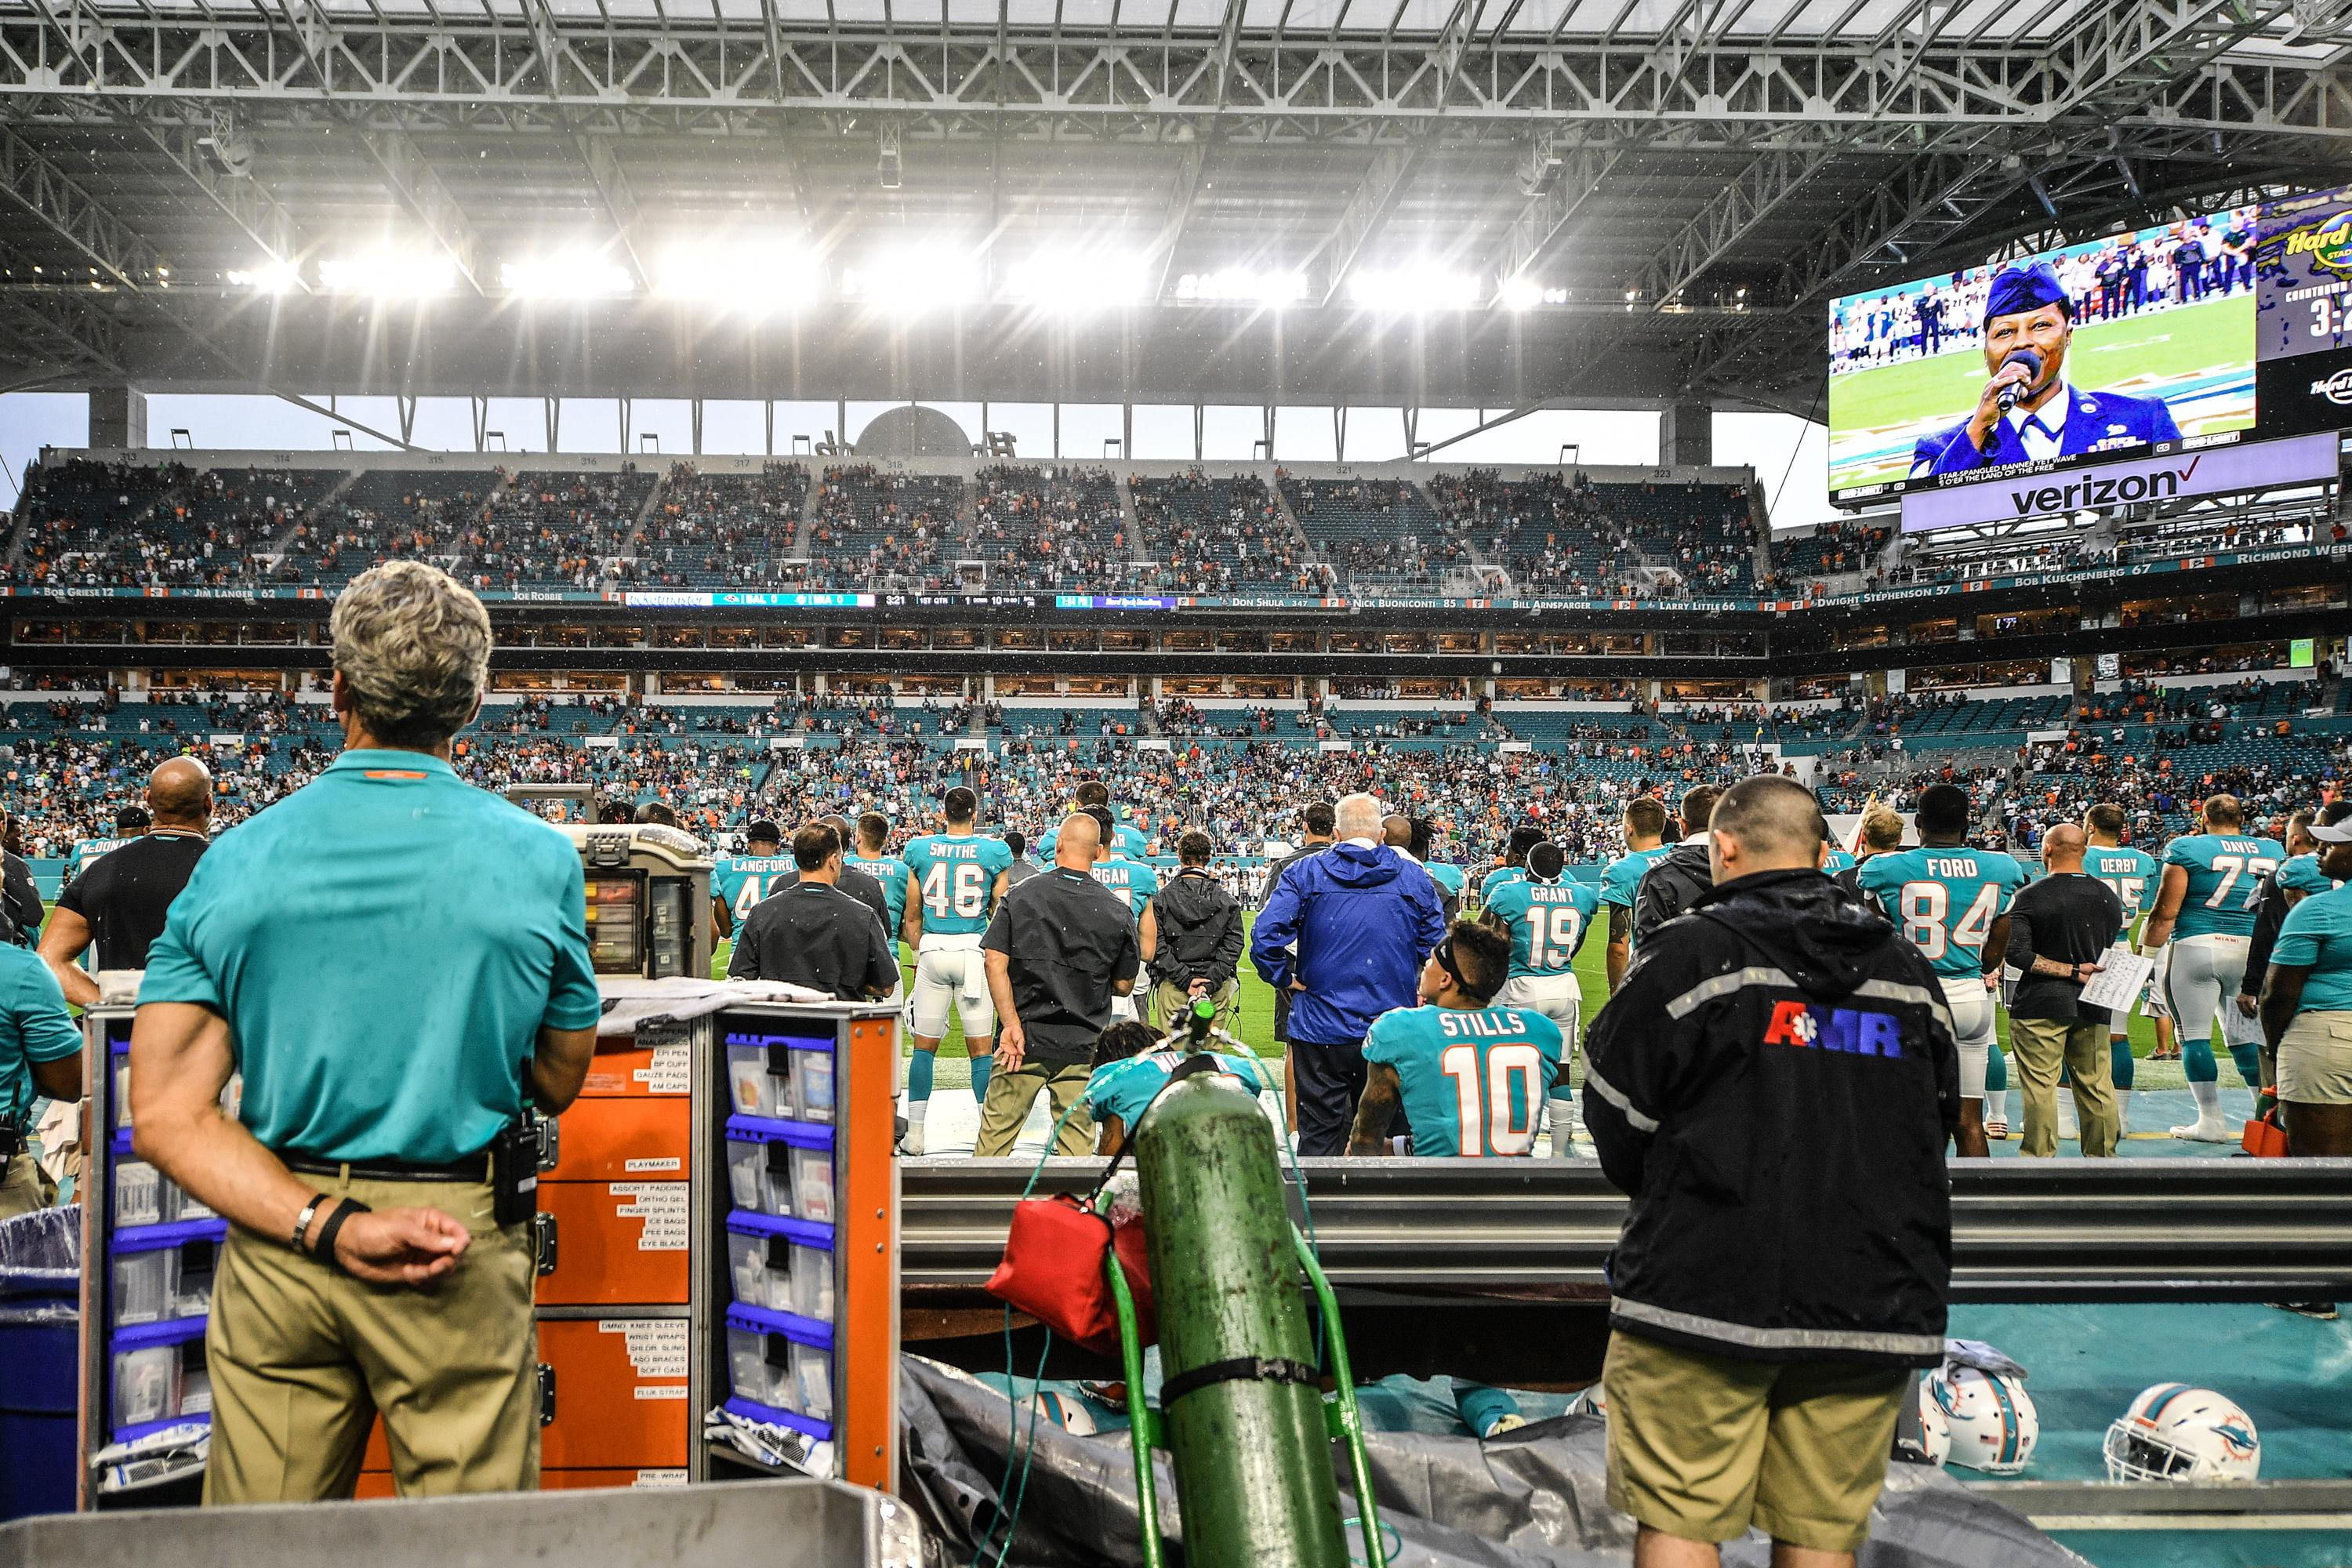 MIAMI, FL - AUGUST 25: Albert Wilson #15 and Kenny Stills #10 of the Miami Dolphins sit on the bench during the National Anthem before a preseason game against the Baltimore Ravens at Hard Rock Stadium on August 25, 2018 in Miami, Florida. (Photo by Mark Brown/Getty Images)